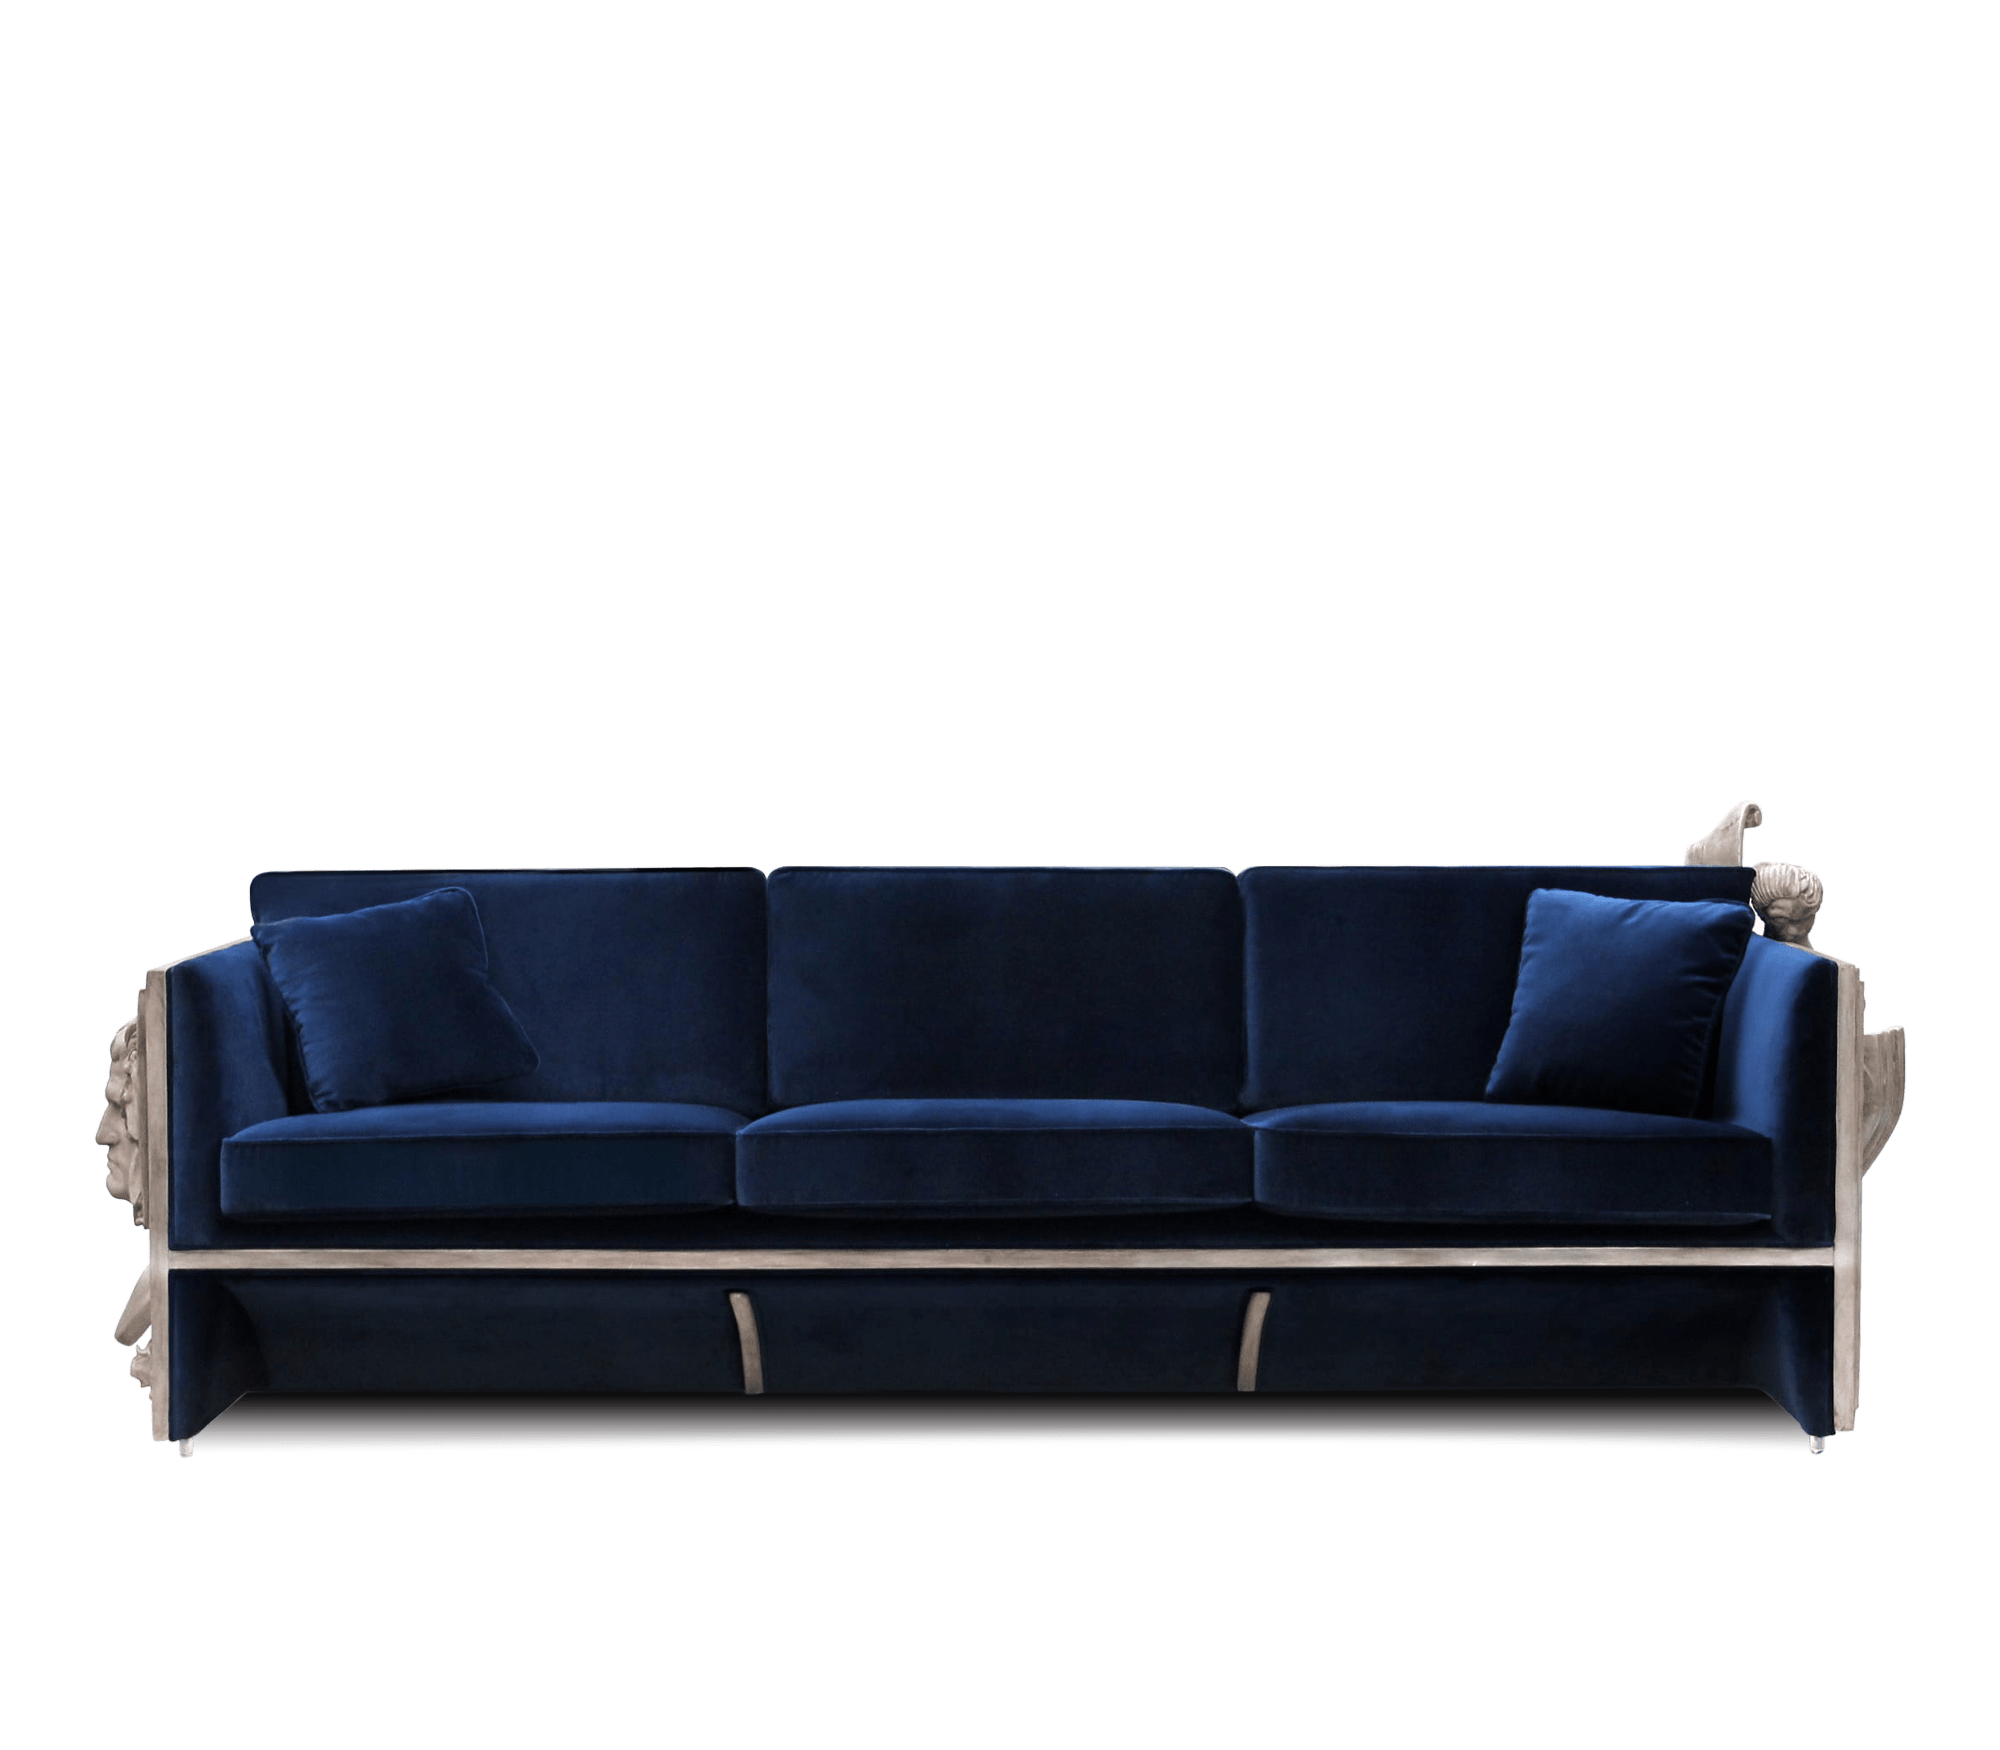 Versailles Sofa Limited Edition | Boca do Lobo